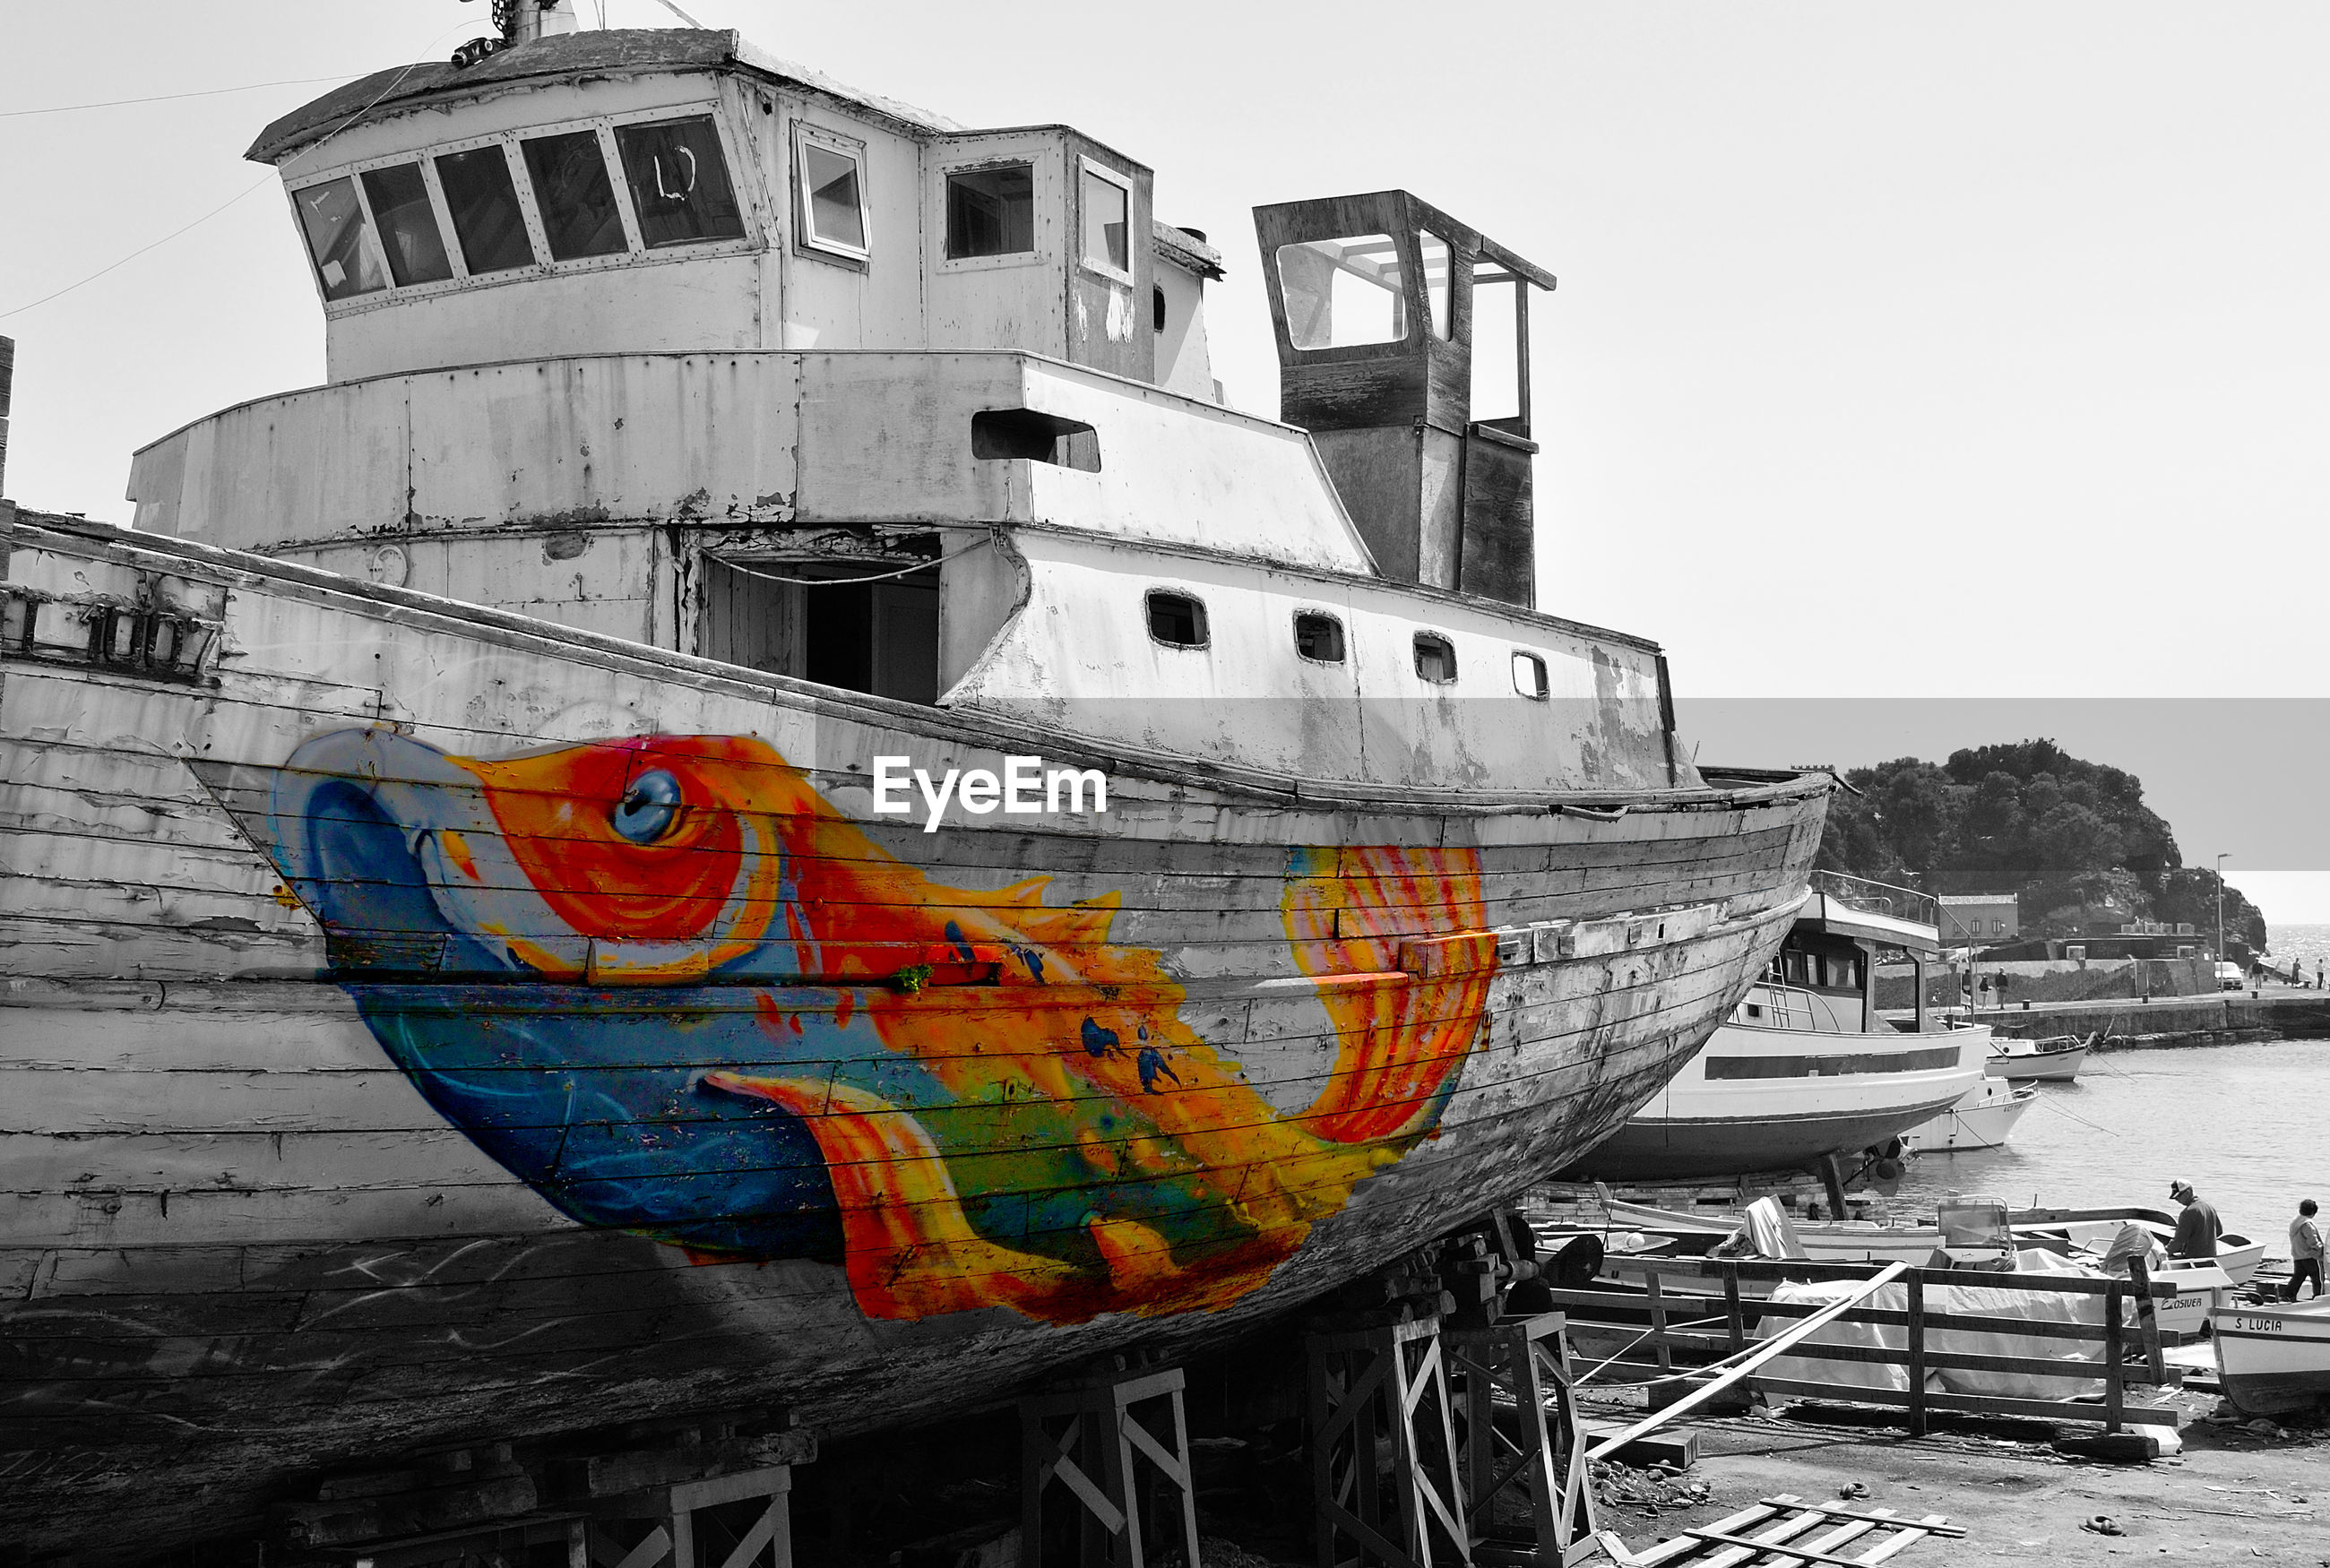 Colorful painting of fish on boat moored at harbor